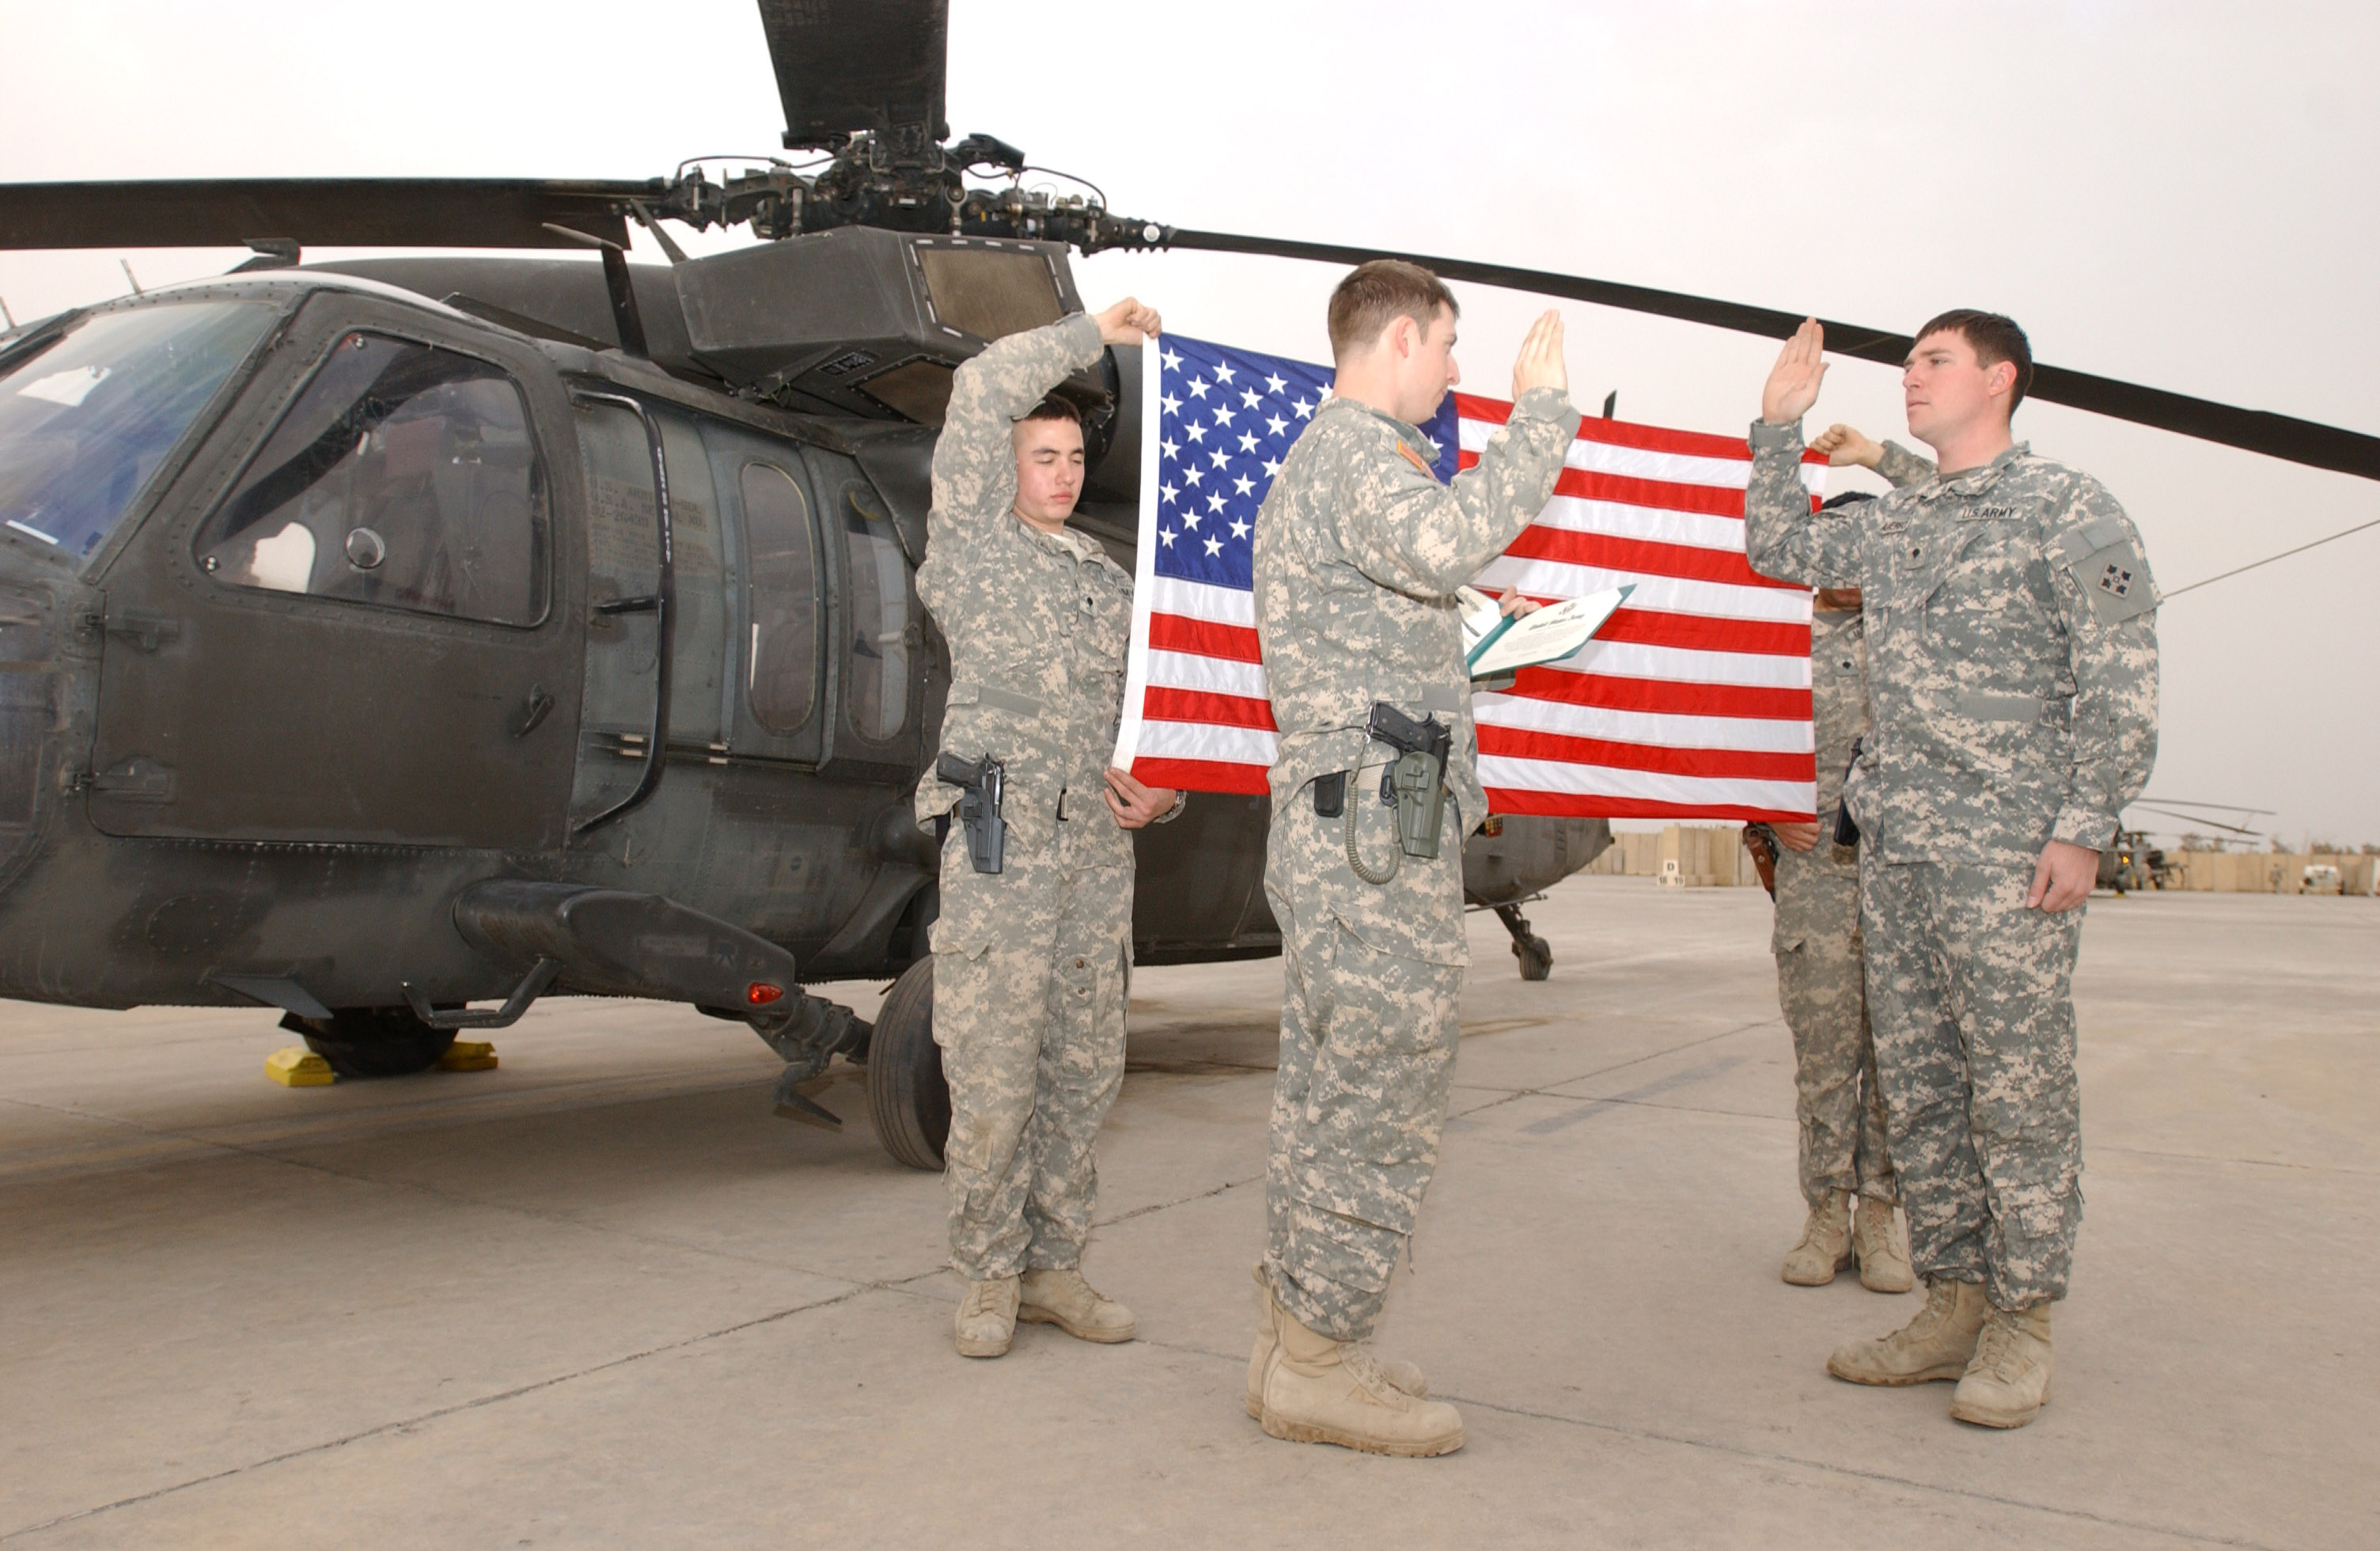 File:Flickr - The U.S. Army - 4th Combat Aviation Brigade meets ...